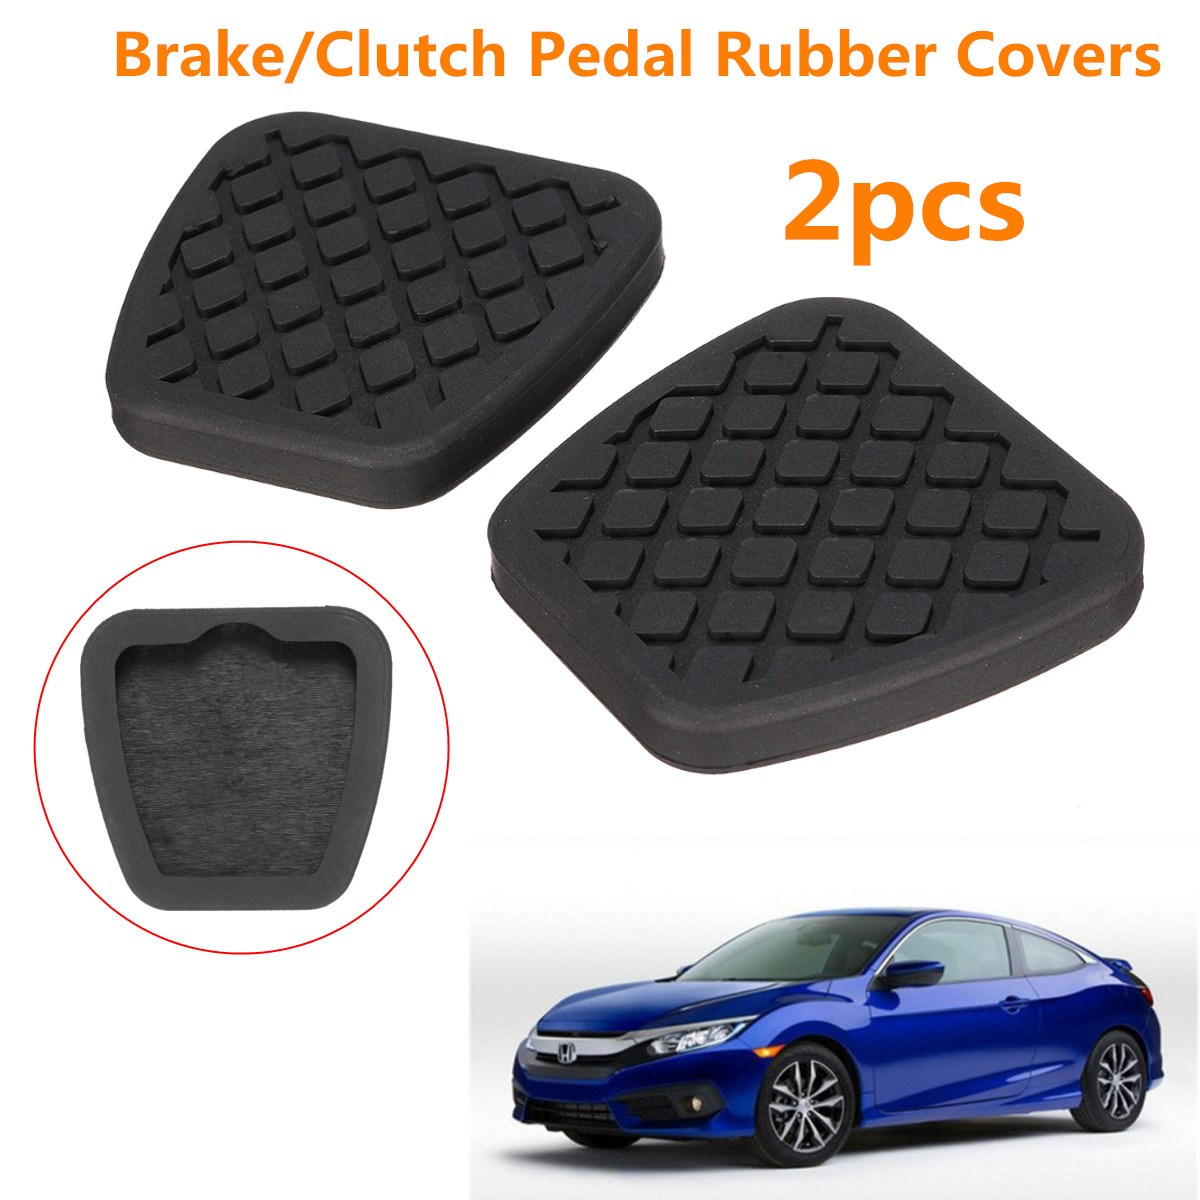 2X Brake Clutch Pedal Pad Rubber Cover For Honda /Civic /Accord /CR V  Prelude /Acura-in Pedals from Automobiles & Motorcycles on Aliexpress.com |  Alibaba ...